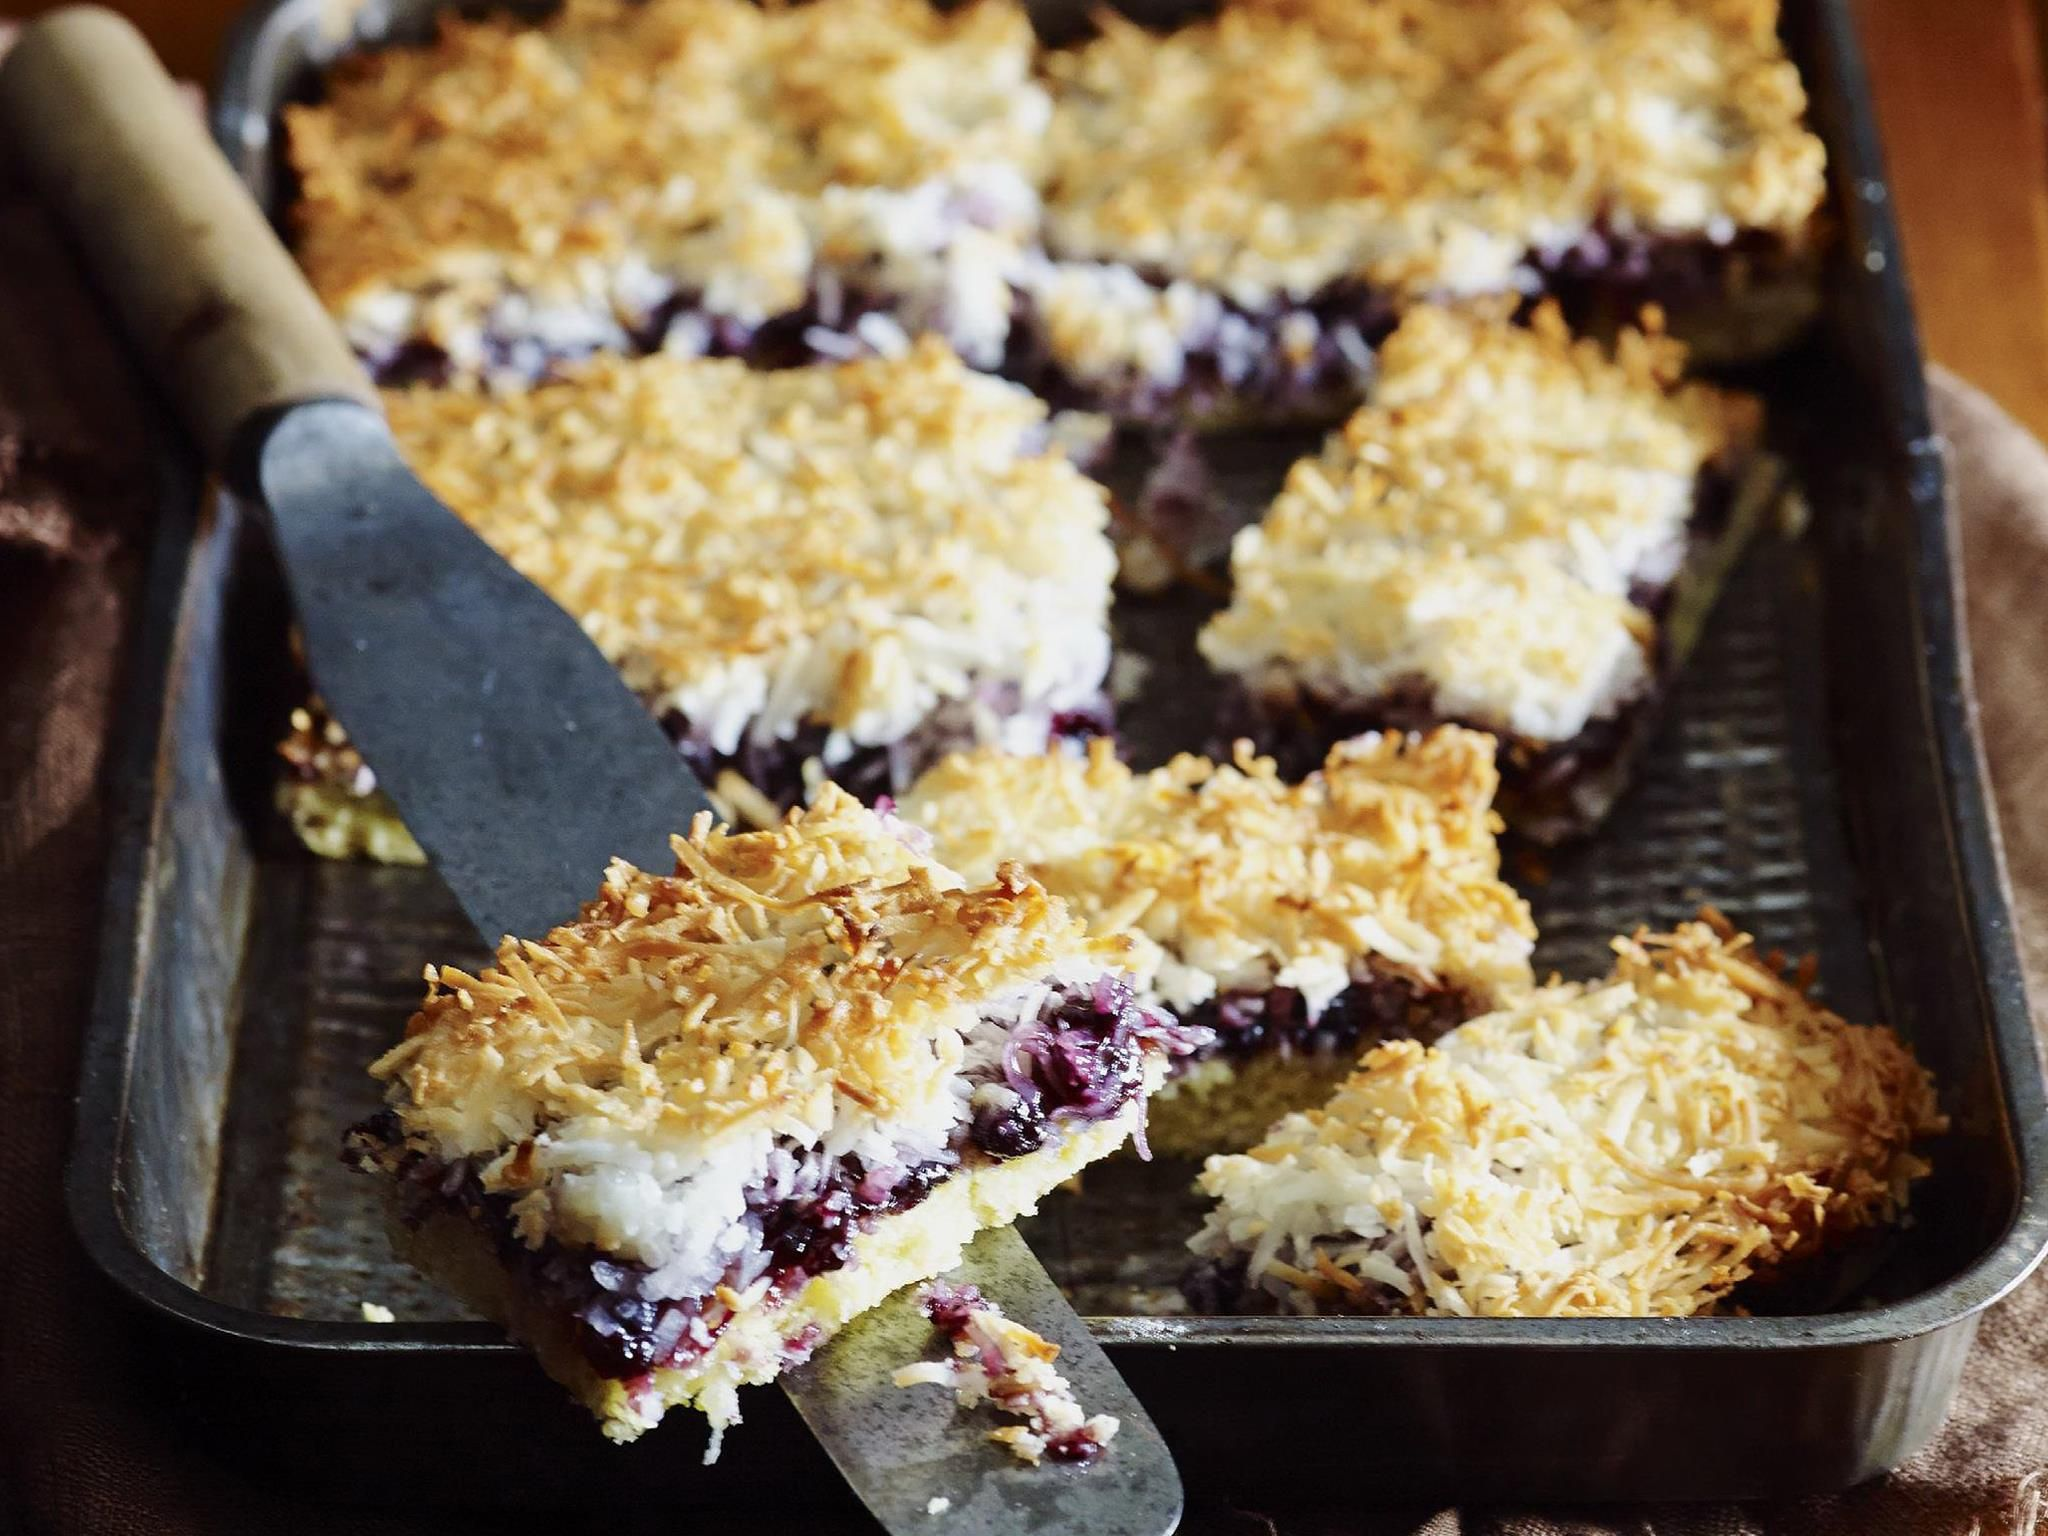 Fill the tins with this delectable, crunchy-topped blueberry slice.